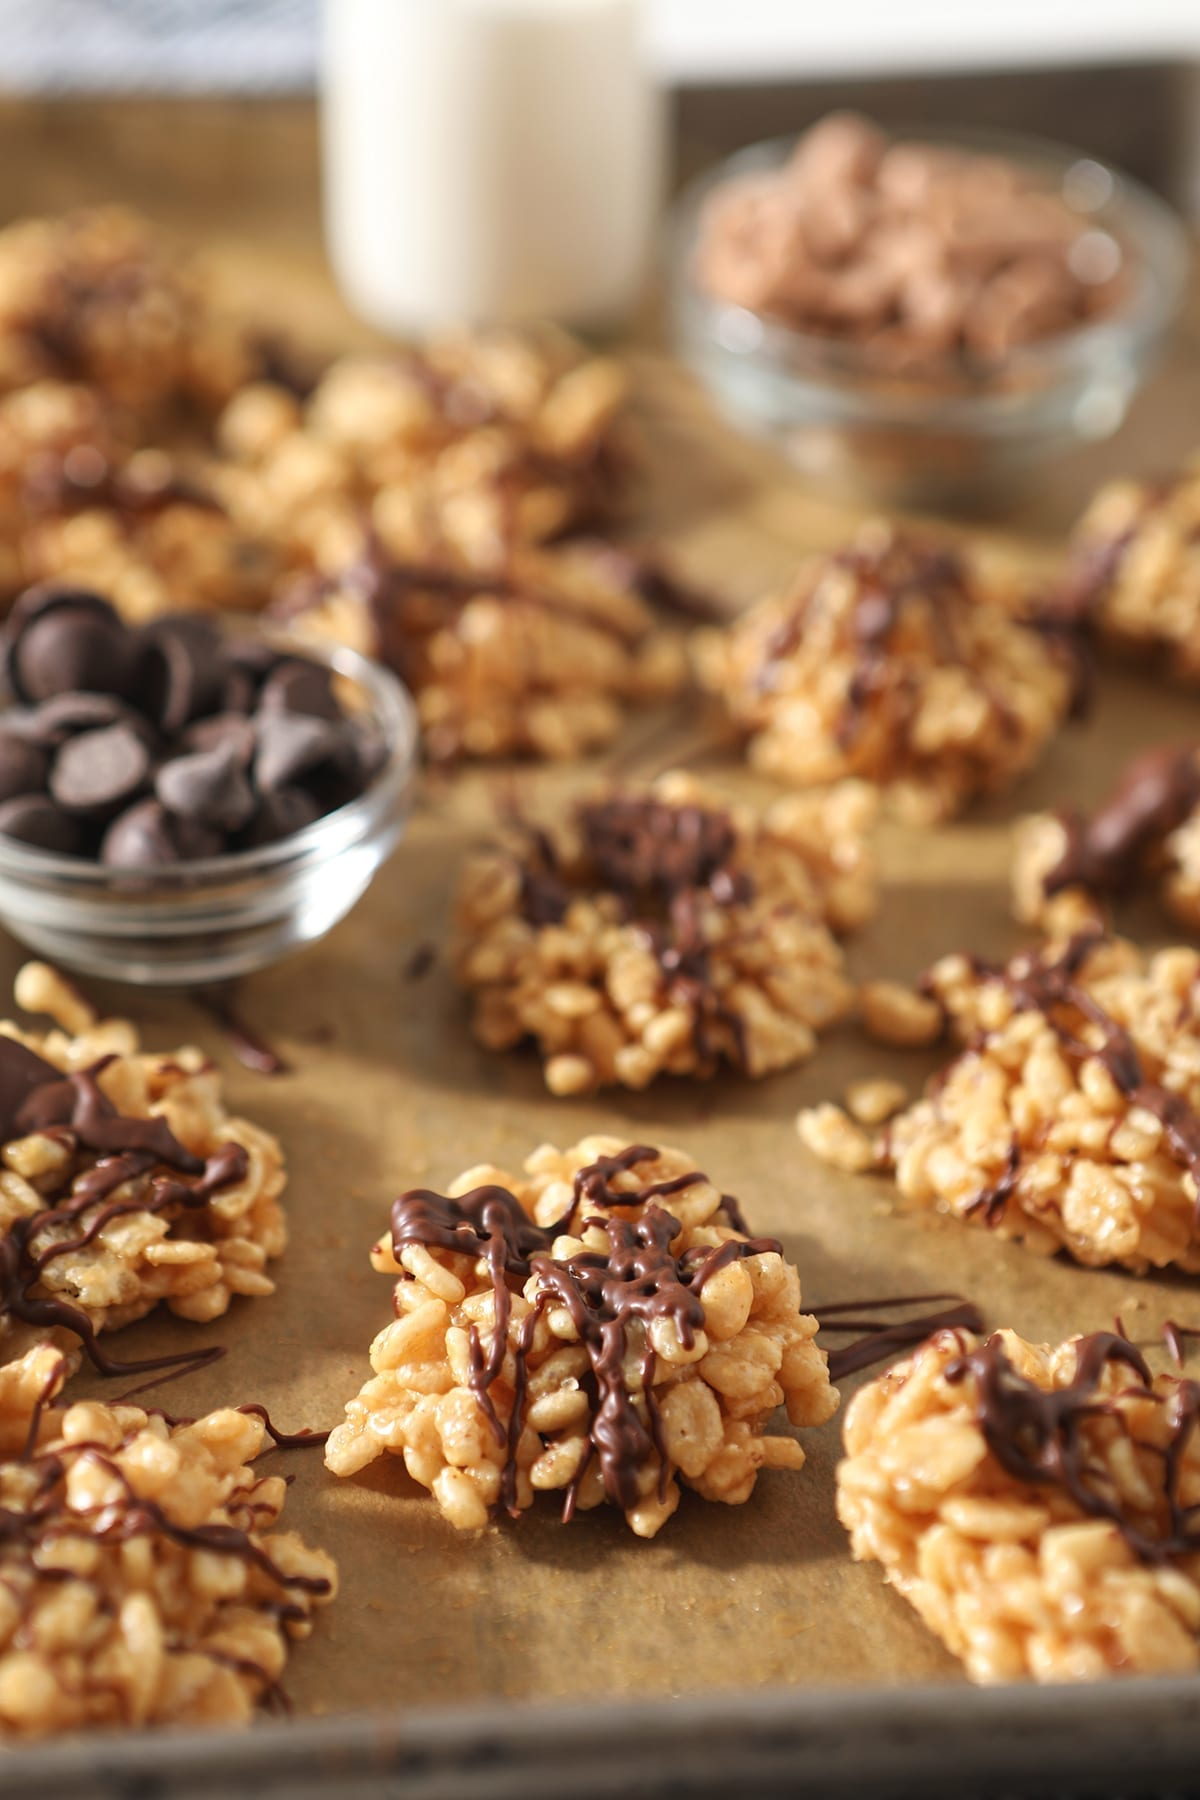 Several Chocolate Peanut Butter No Bake Cookies sit on a baking sheet lined in parchment with bowls of chocolate chips and butterscotch chips